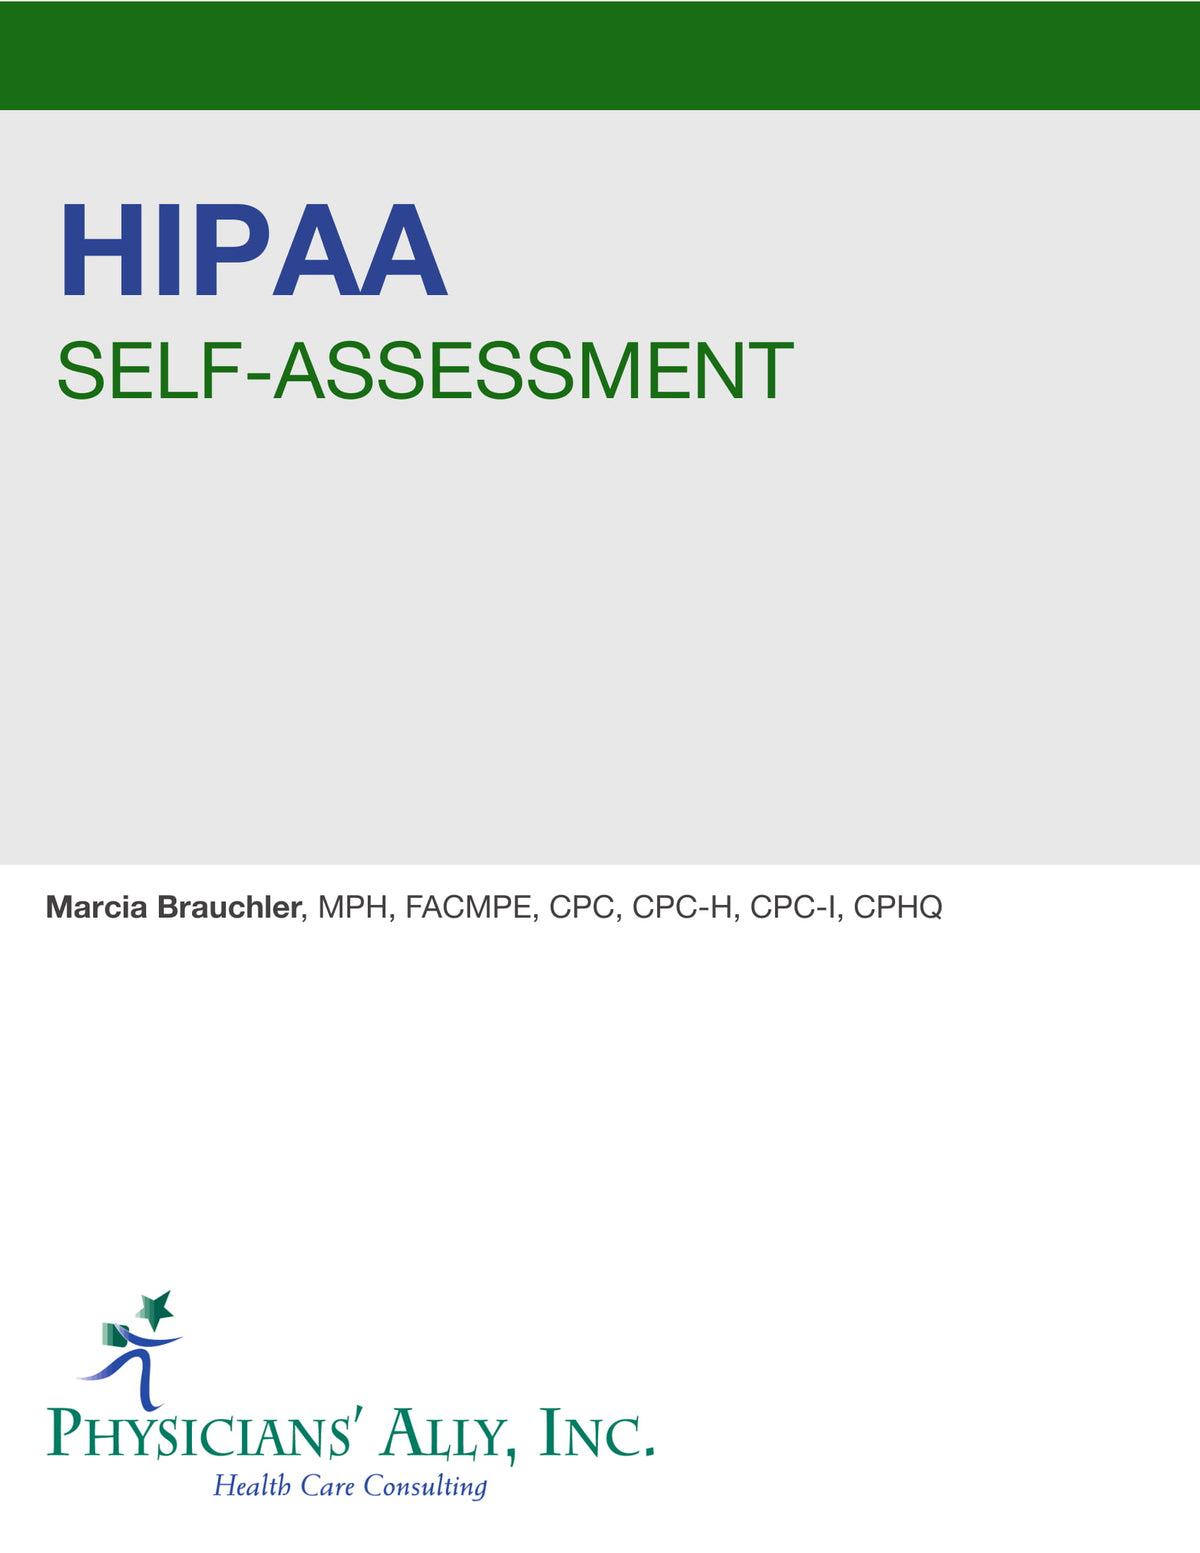 HIPAA Self-Assessment